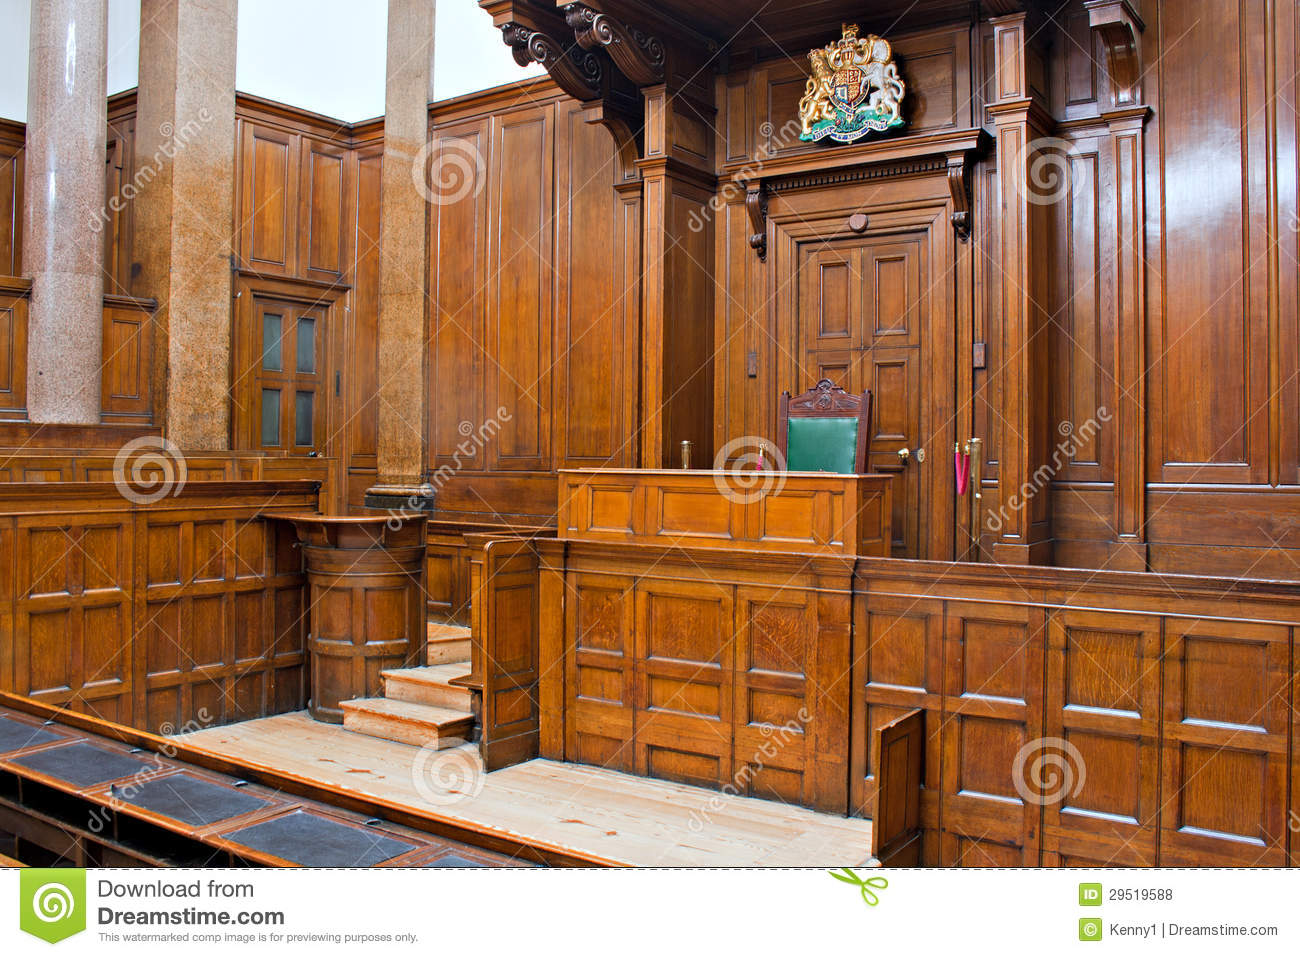 View Crown Court Room Inside St Georges Hall L Royalty Free Stock s Image